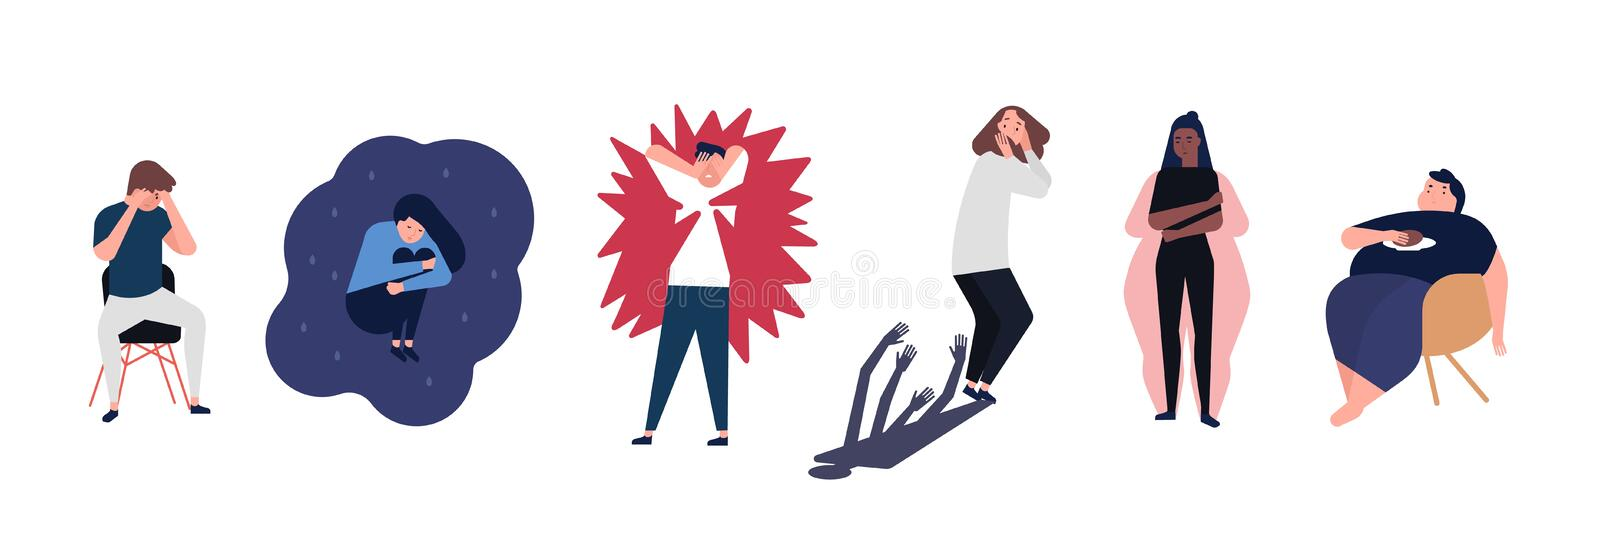 Collection of men and women with mental disorders, illnesses, impairments, psychiatric or psychological problems. Flat stock illustration